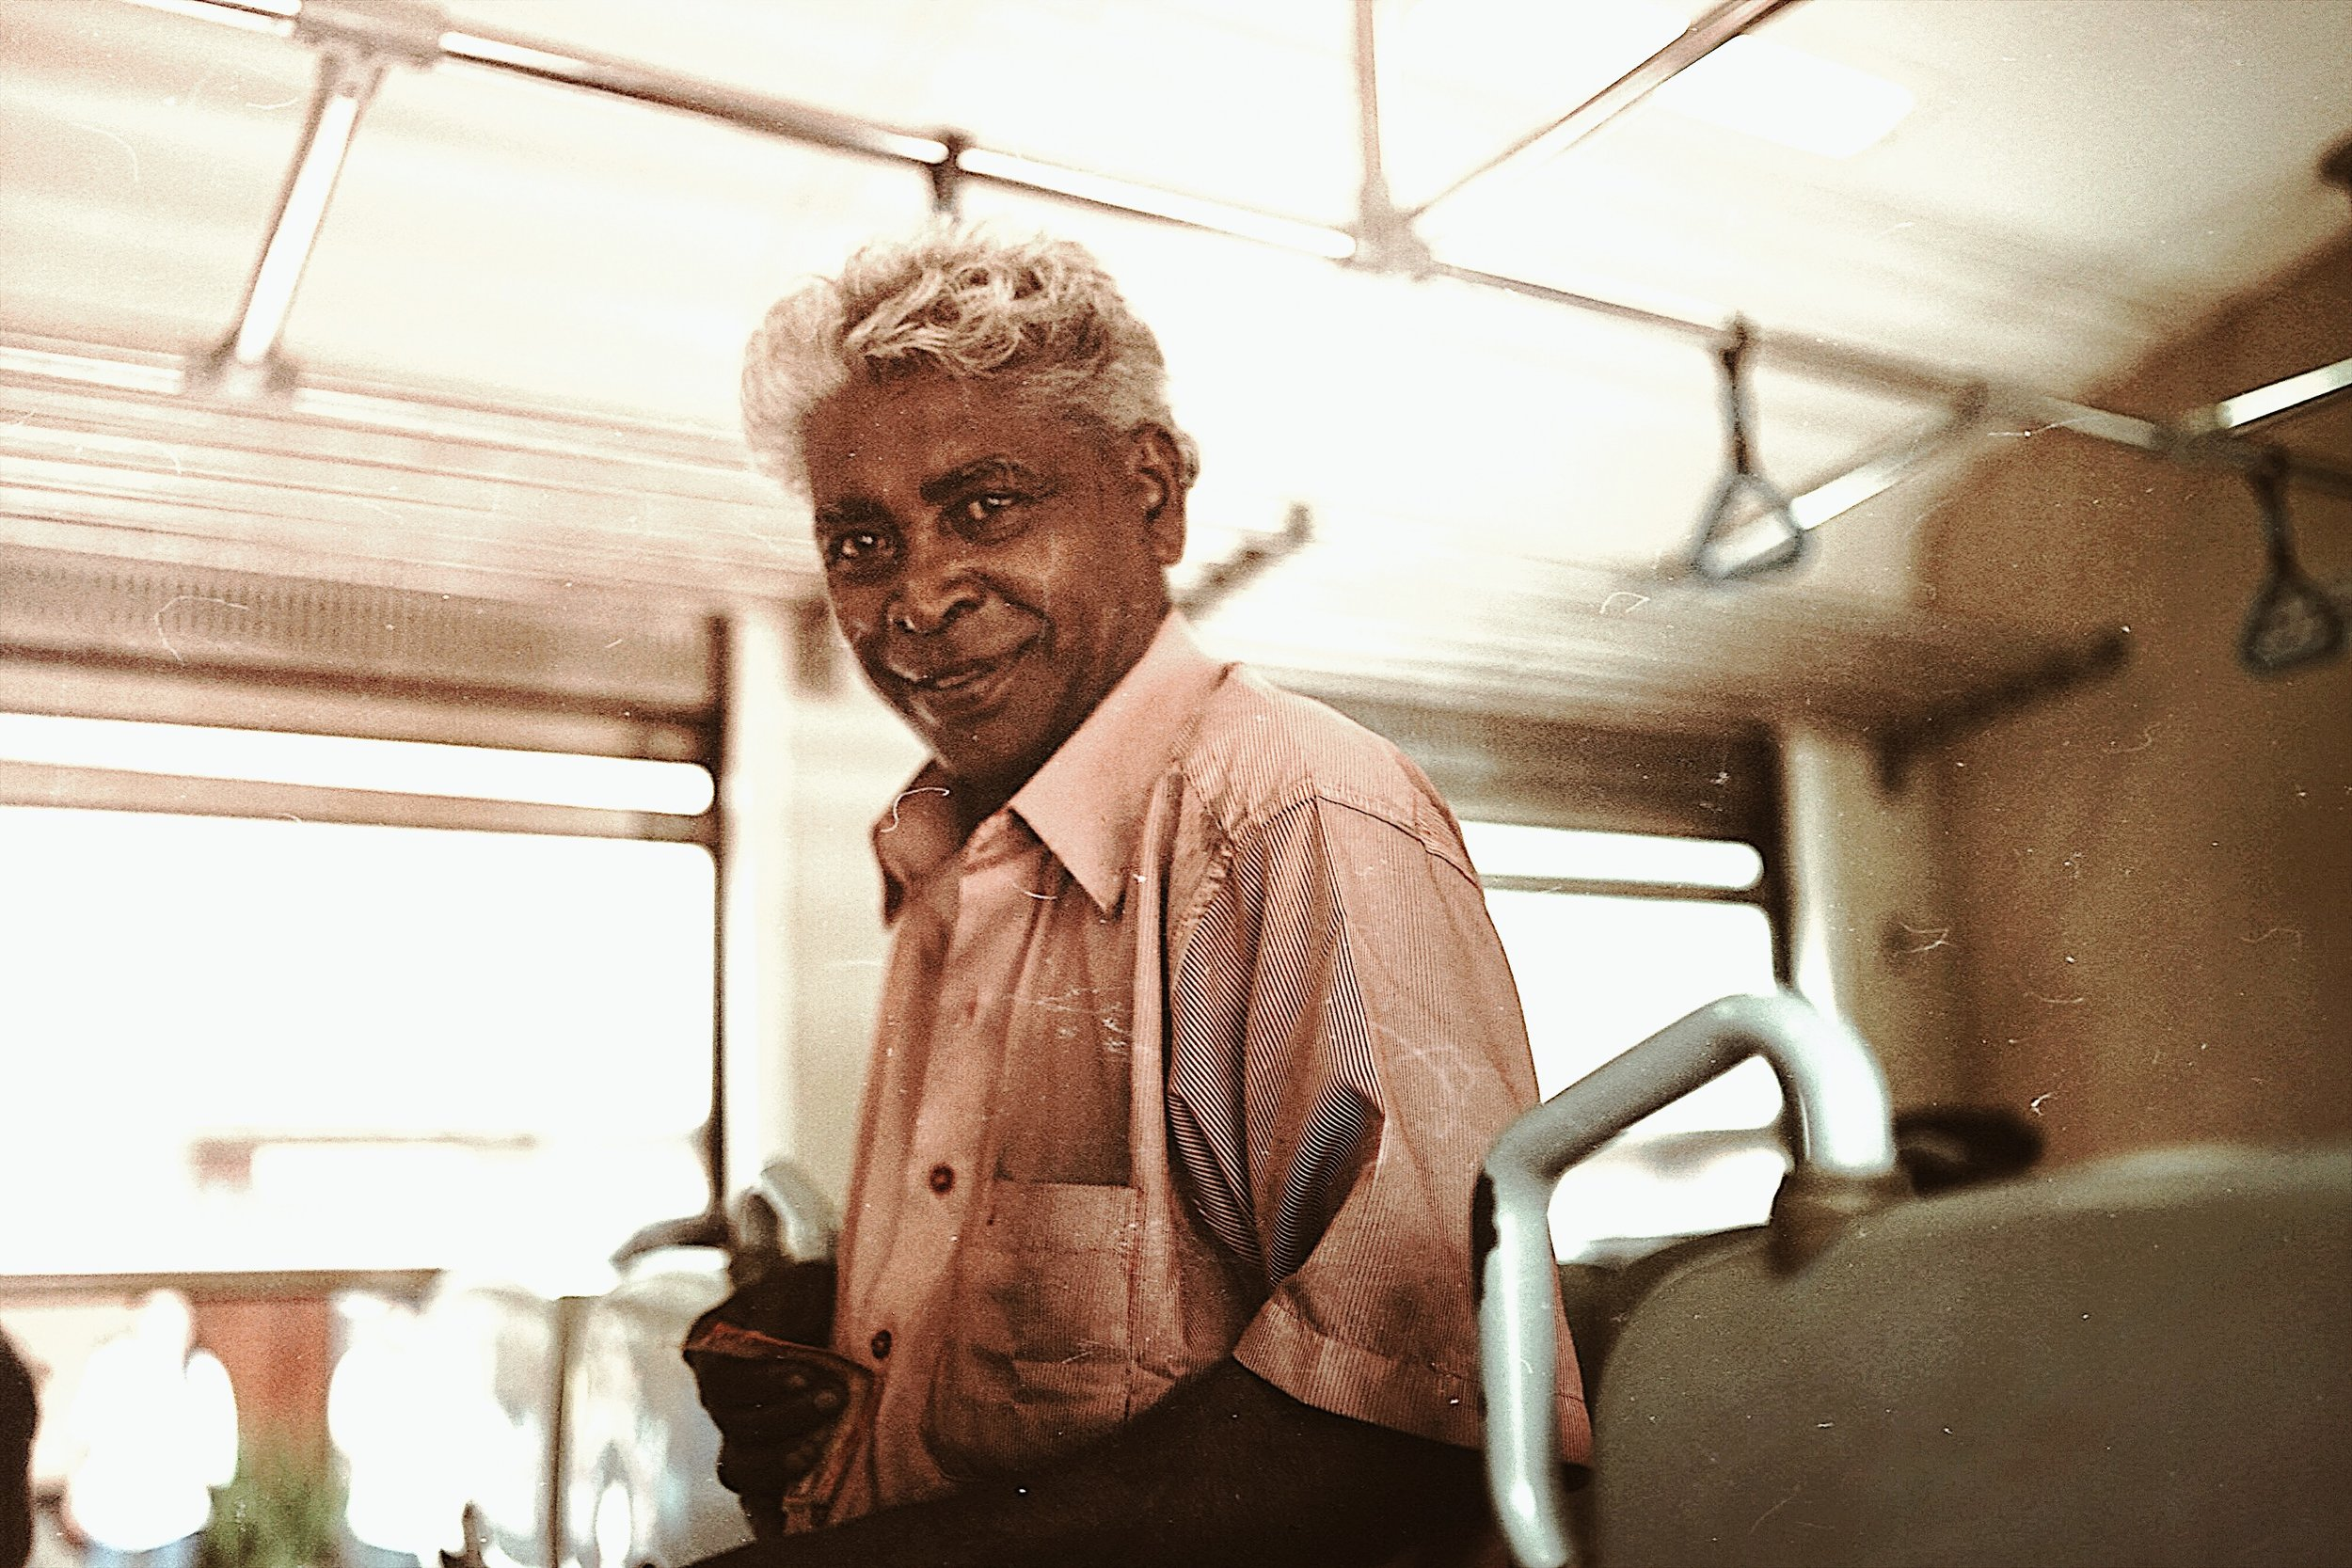 The Coastal Line - From Colombo Fort to Galle railway station it takes about 2-3 hours. The trains are usually packed and it's hard to find a seat. To make the trip bearable you can buy some refreshments, fruits and other fingerfood from gentlemen like this guy. He sold us some weird looking pastries.